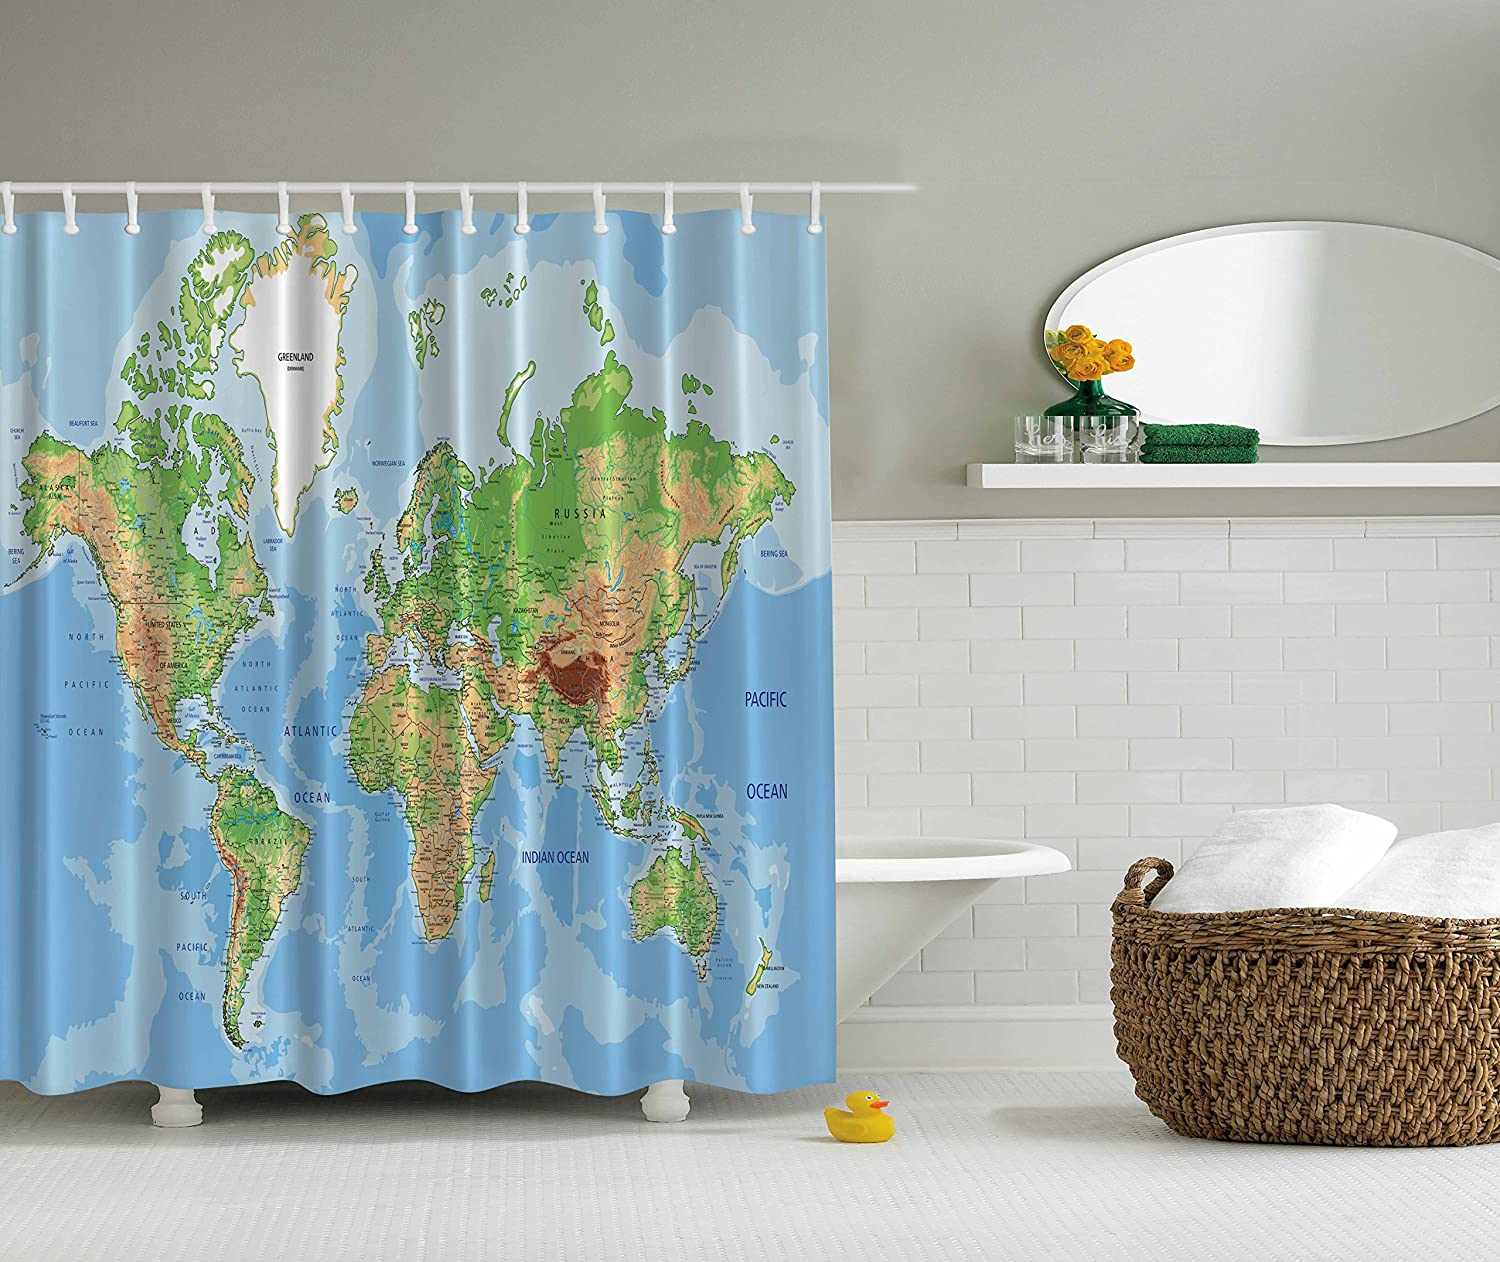 Ocean shower curtain - Amazon Com World Map Print Educational Geographical Earth In My Bathroom Direction Ability Ocean Journeys Voyager Novelty Home Decor Fabric Shower Curtain